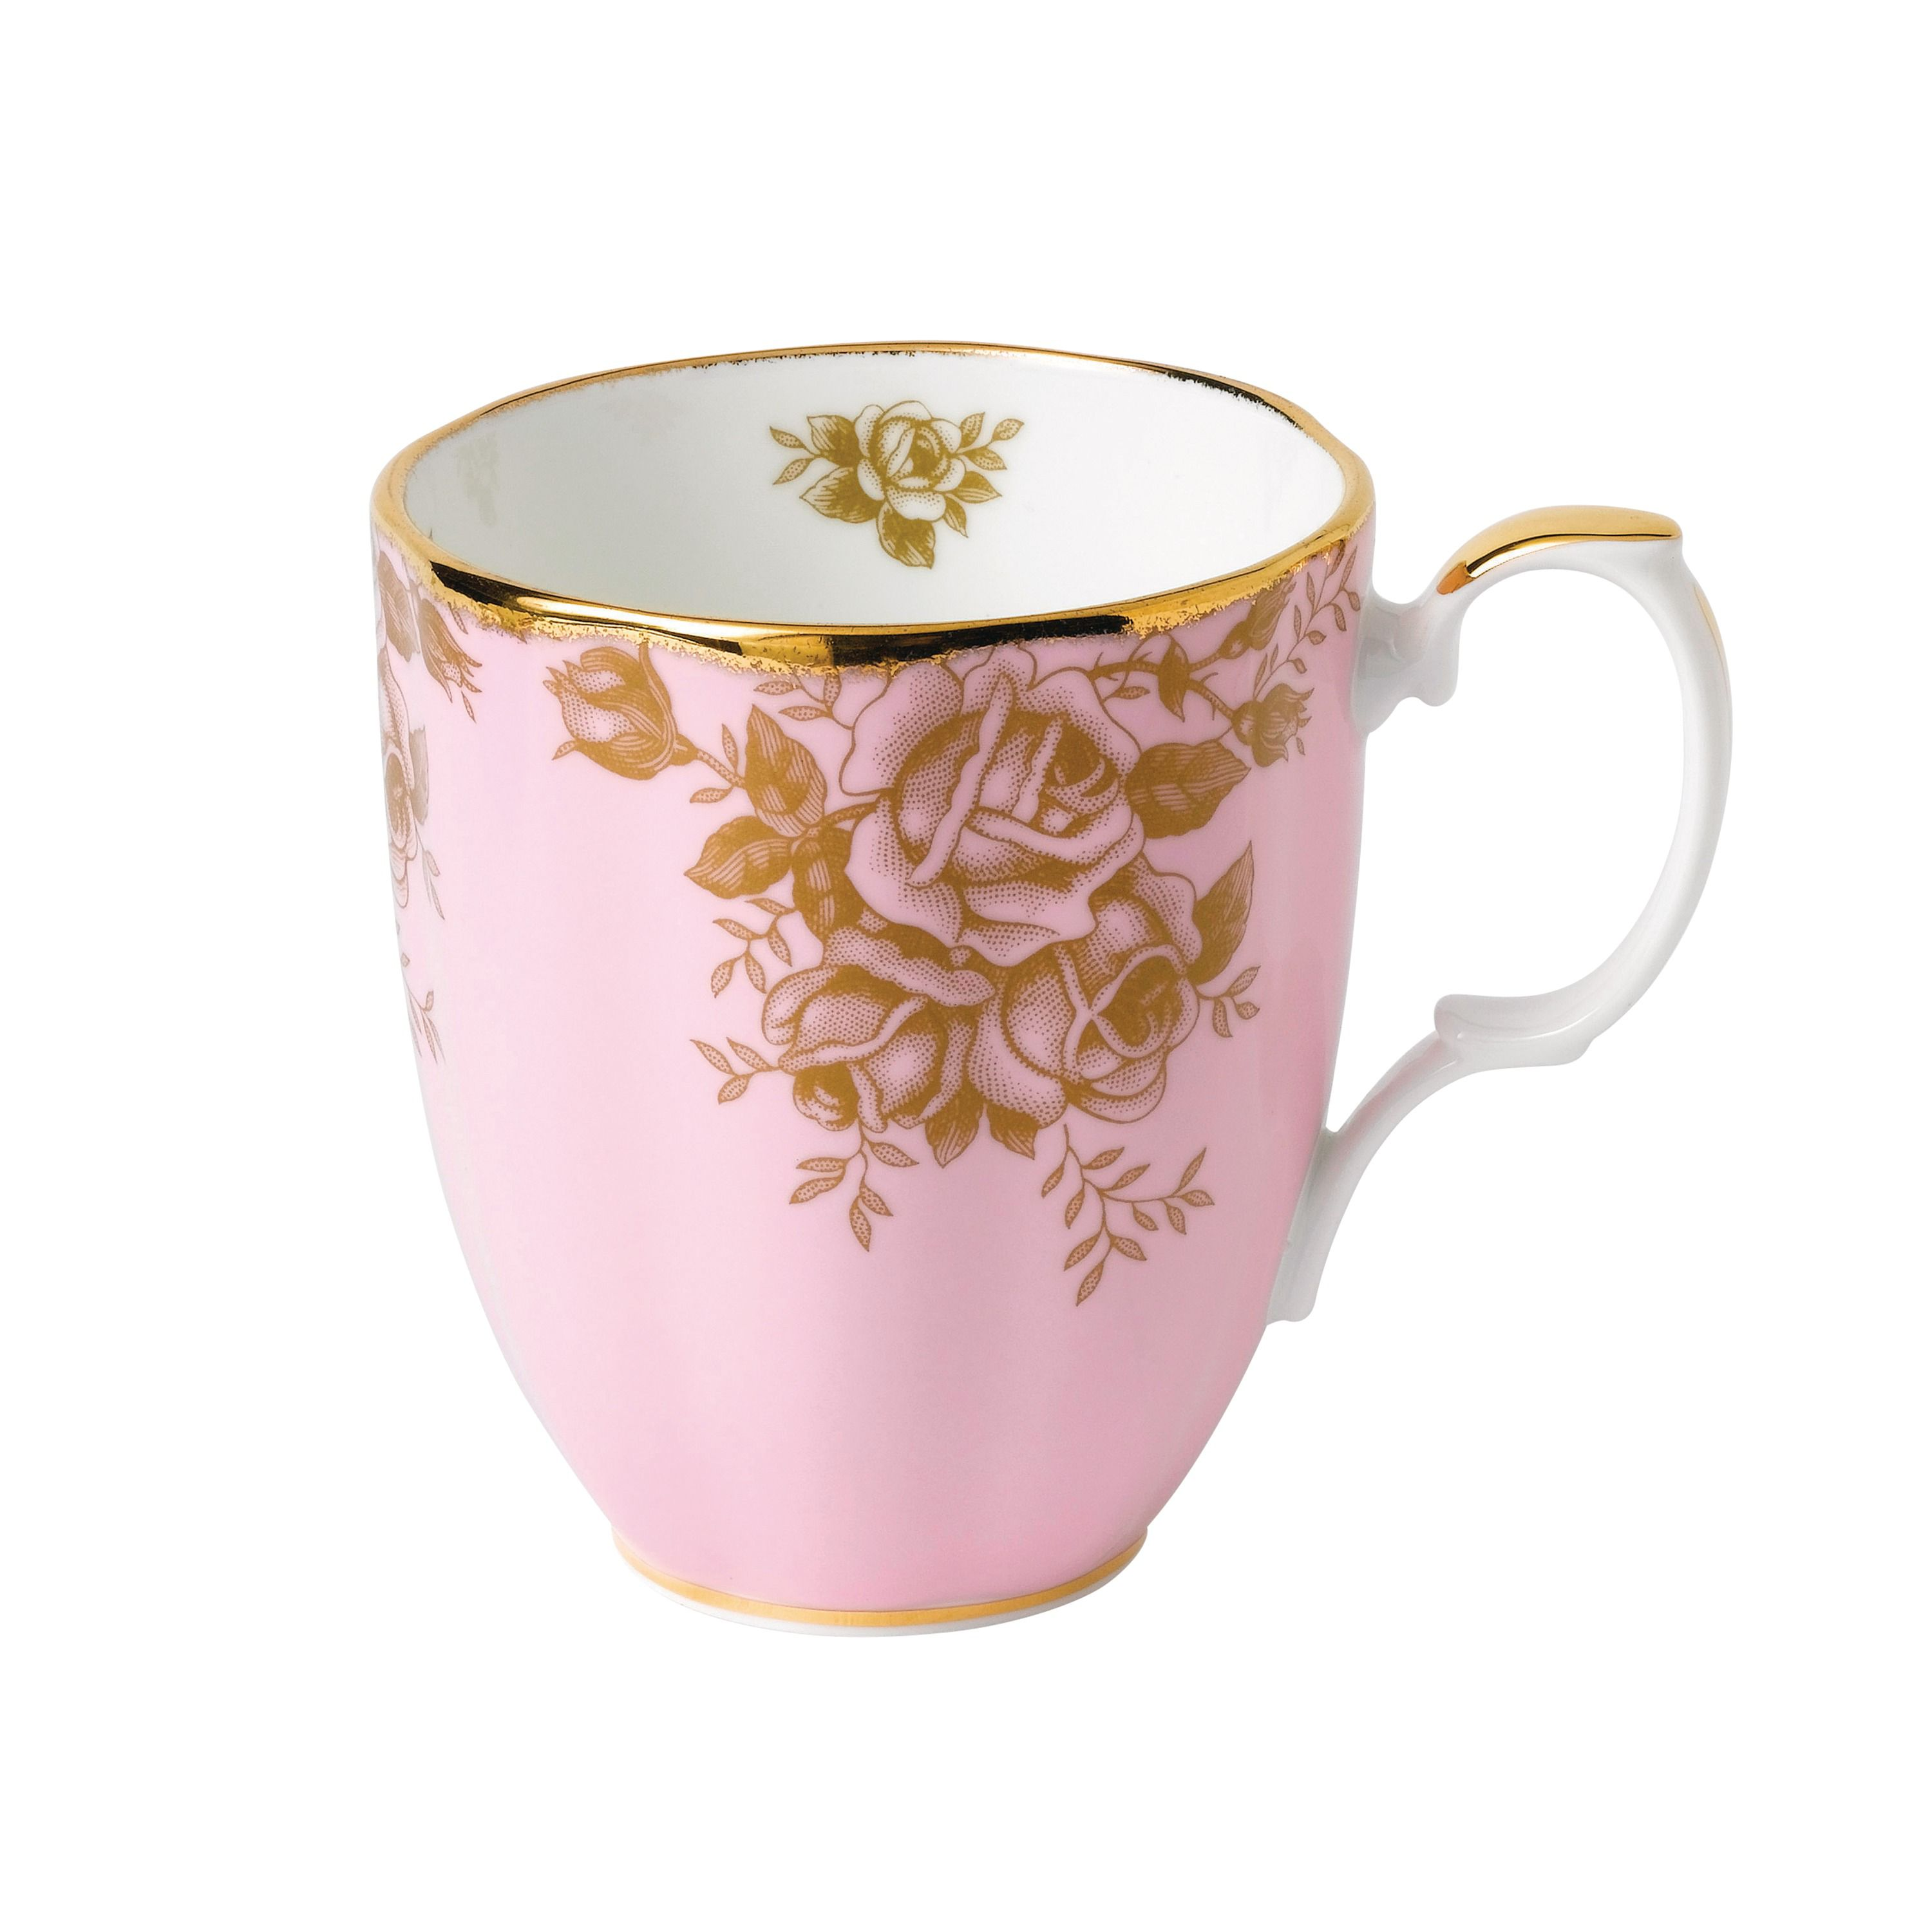 Royal Albert 100 years 1960 golden roses mug